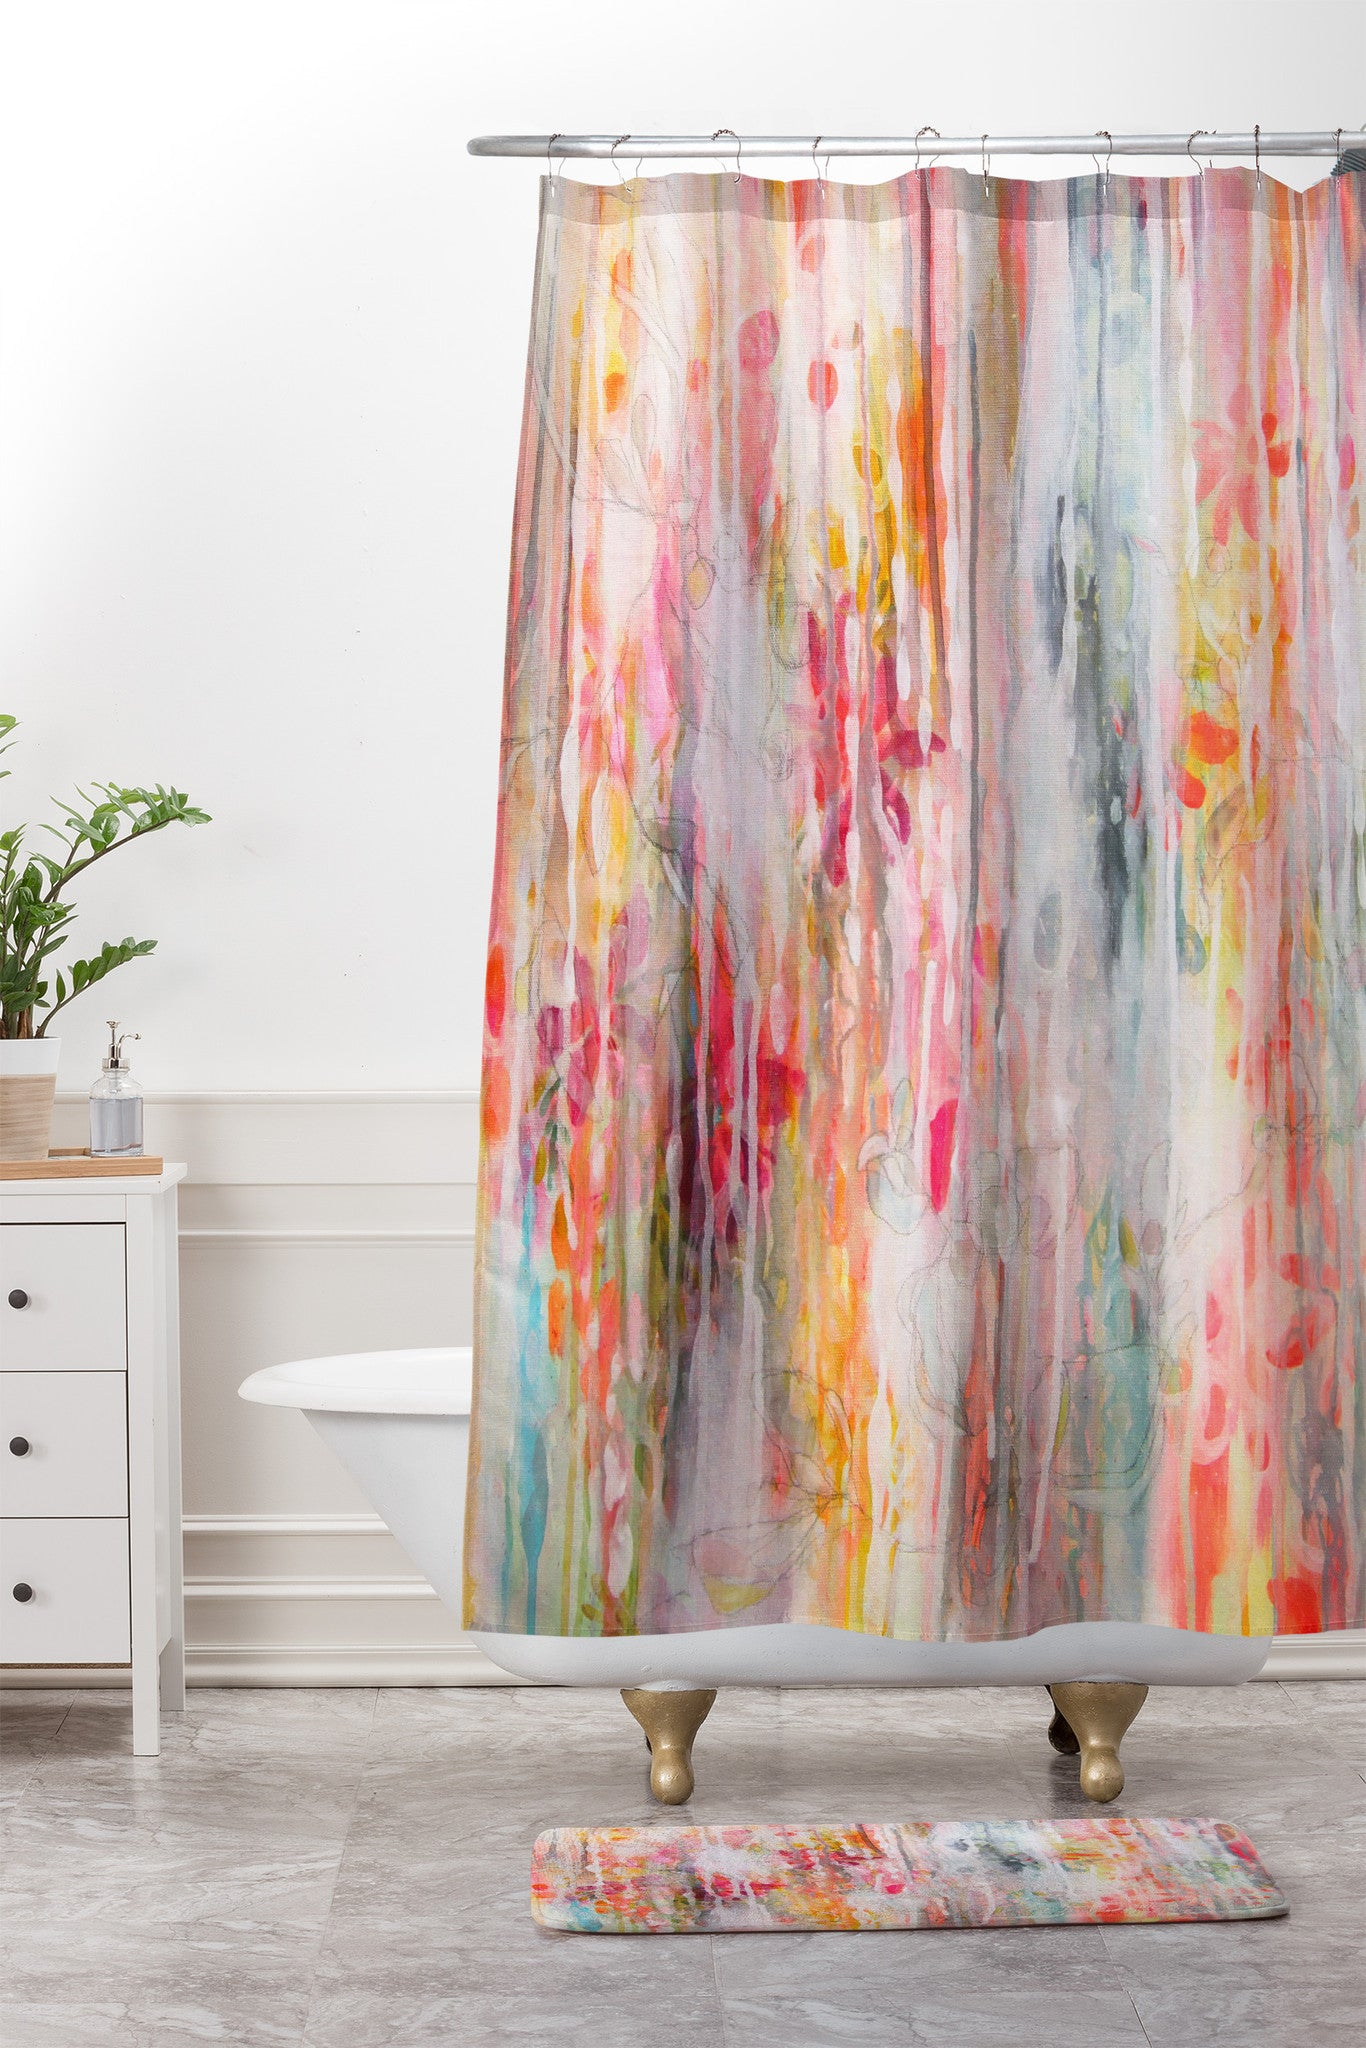 Sparkling Water Shower Curtain And Mat Stephanie Corfee